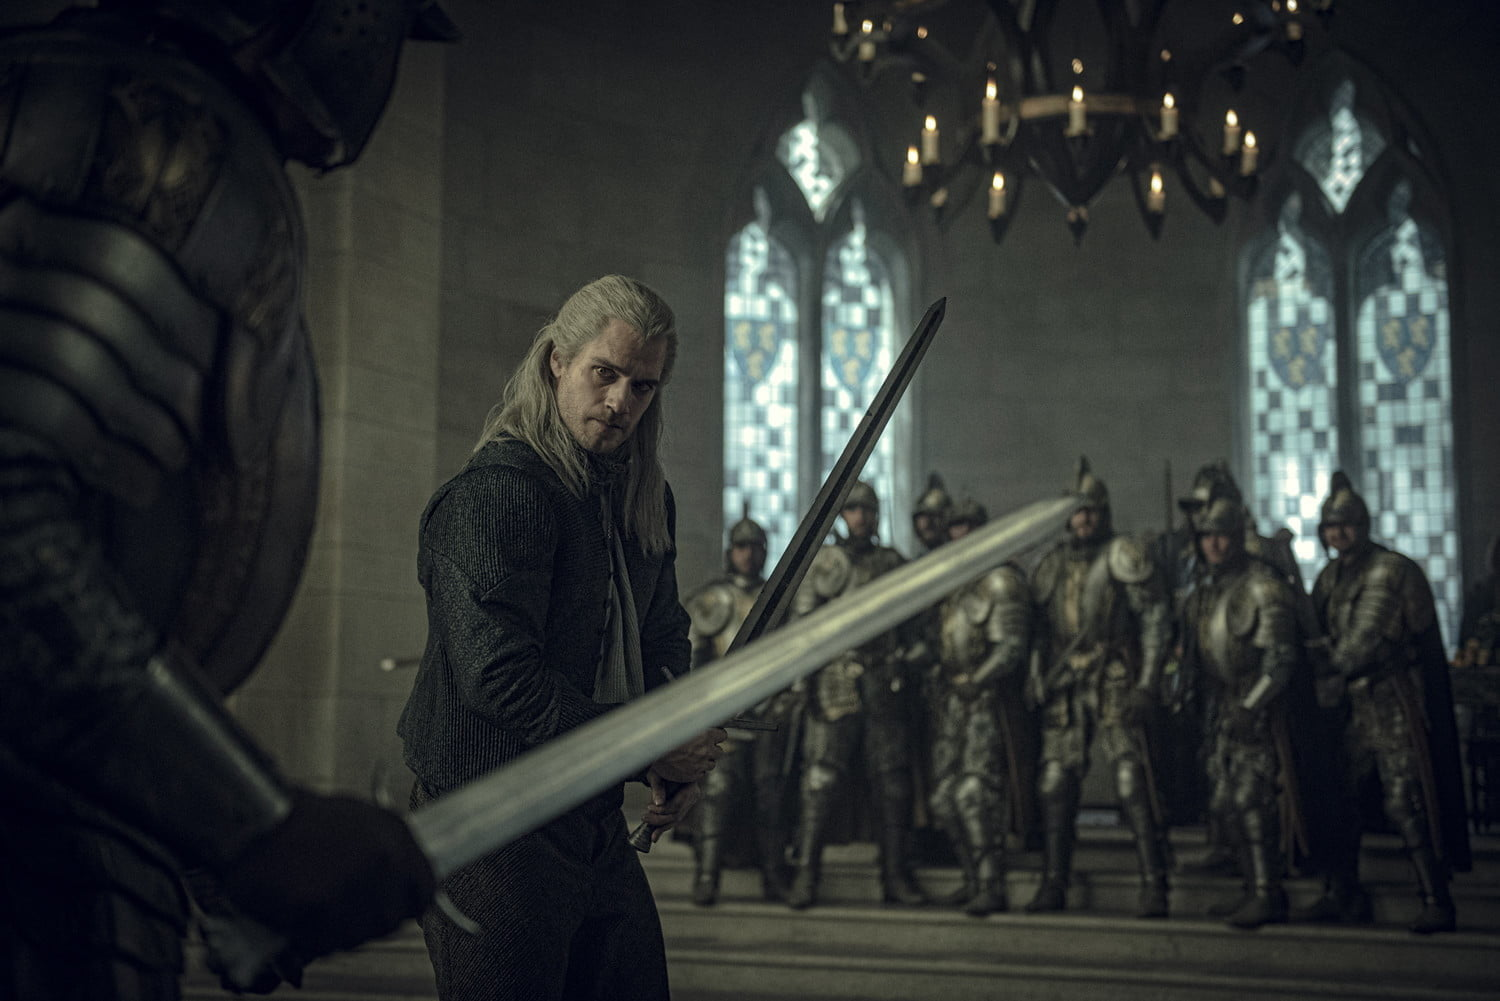 Henry Cavill teases Season 2 of The Witcher in Instagram message